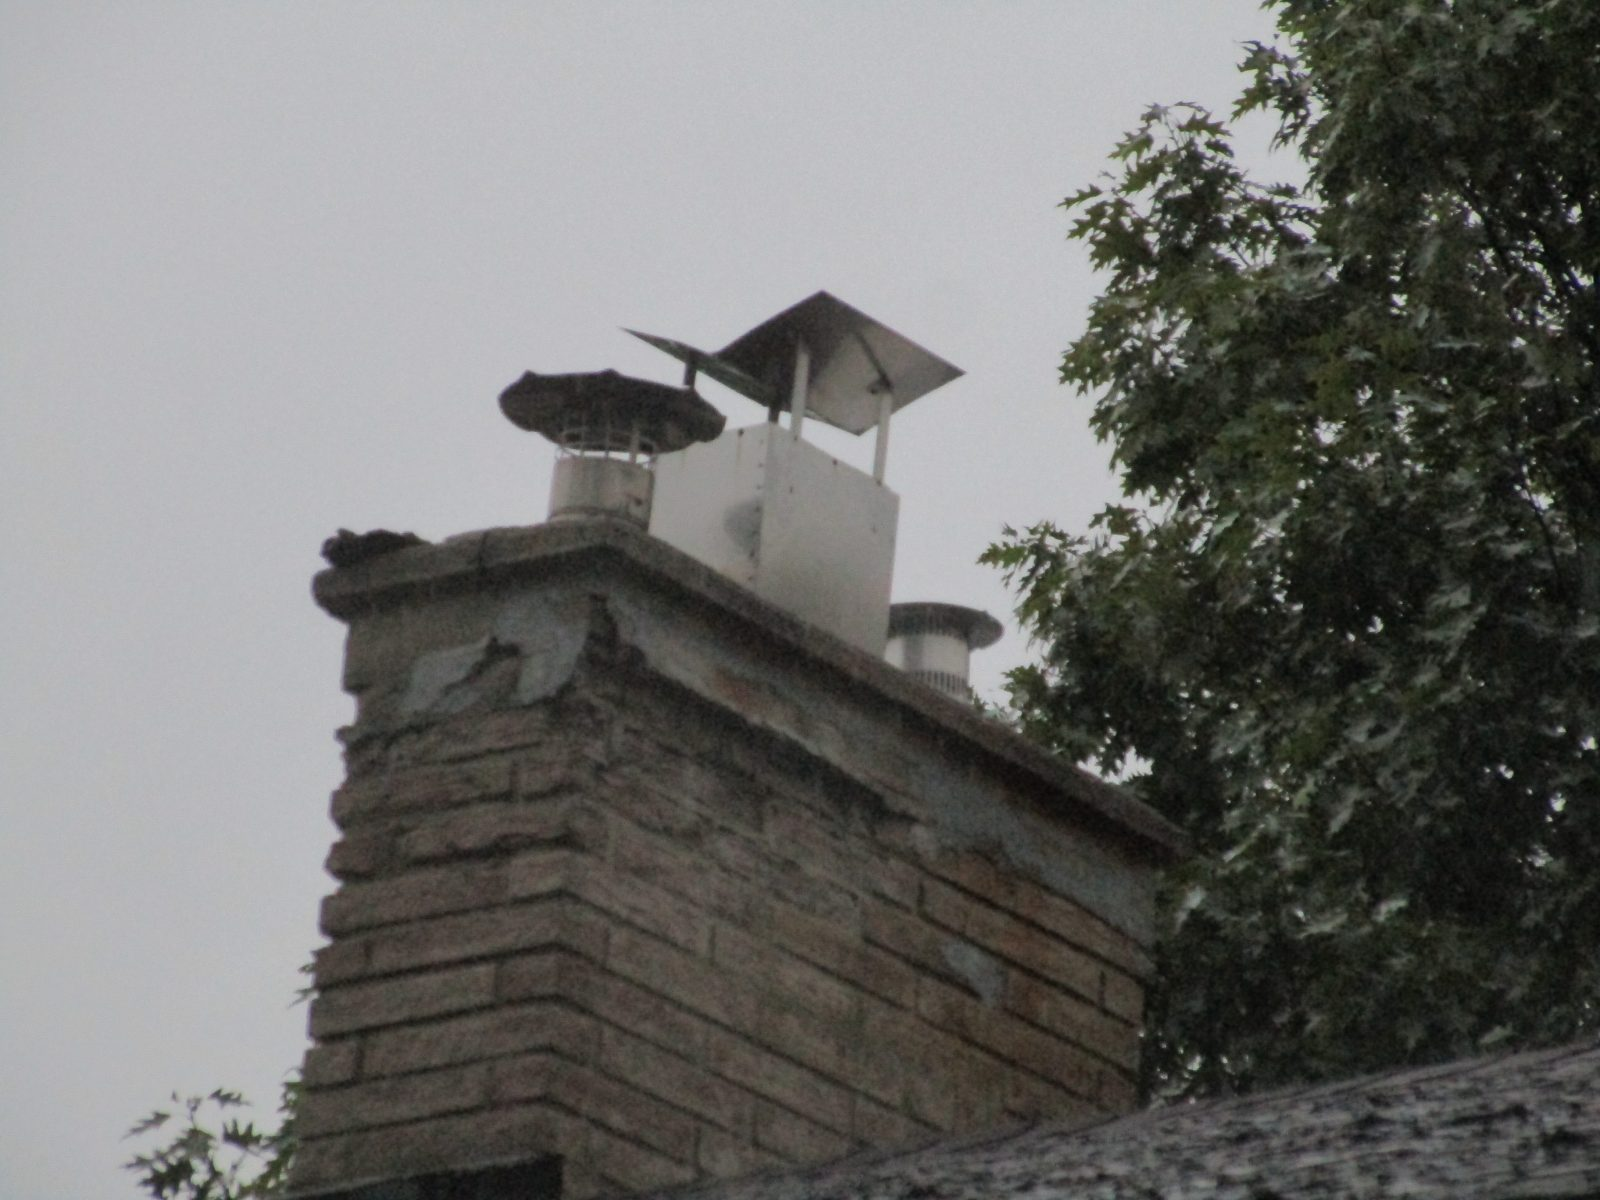 Structural Damage to chimney and Home Made Rain Cap